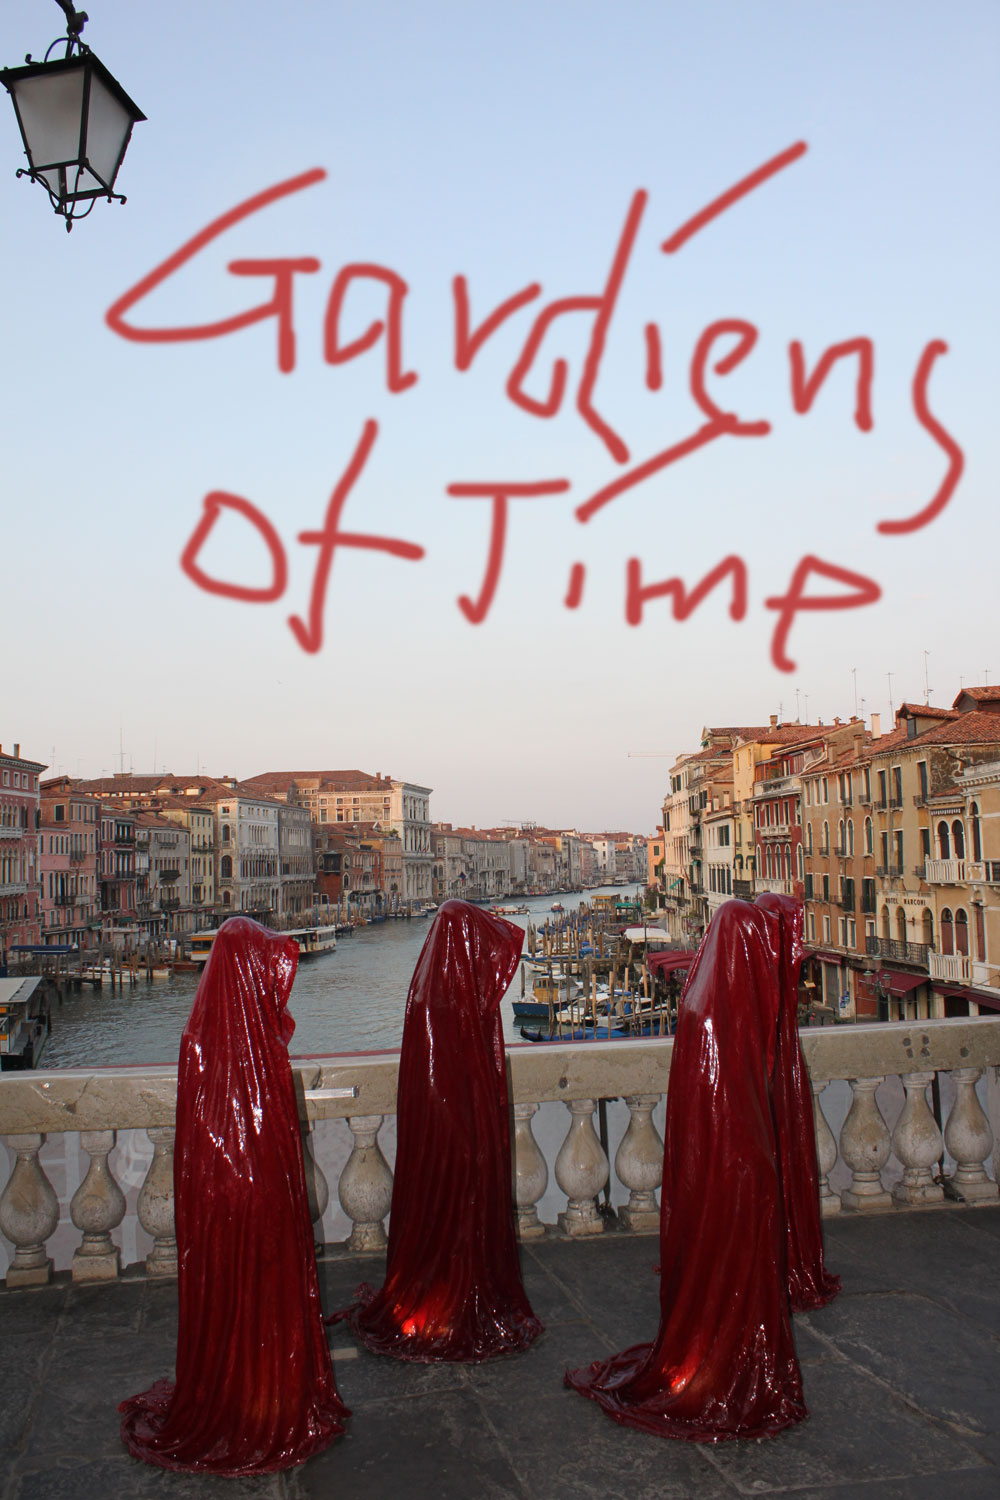 public art biennial festival show exhibition in Venice by Manfred Kielnhofer guardians of time contemporary art design architecture sculpture theatre 4161a